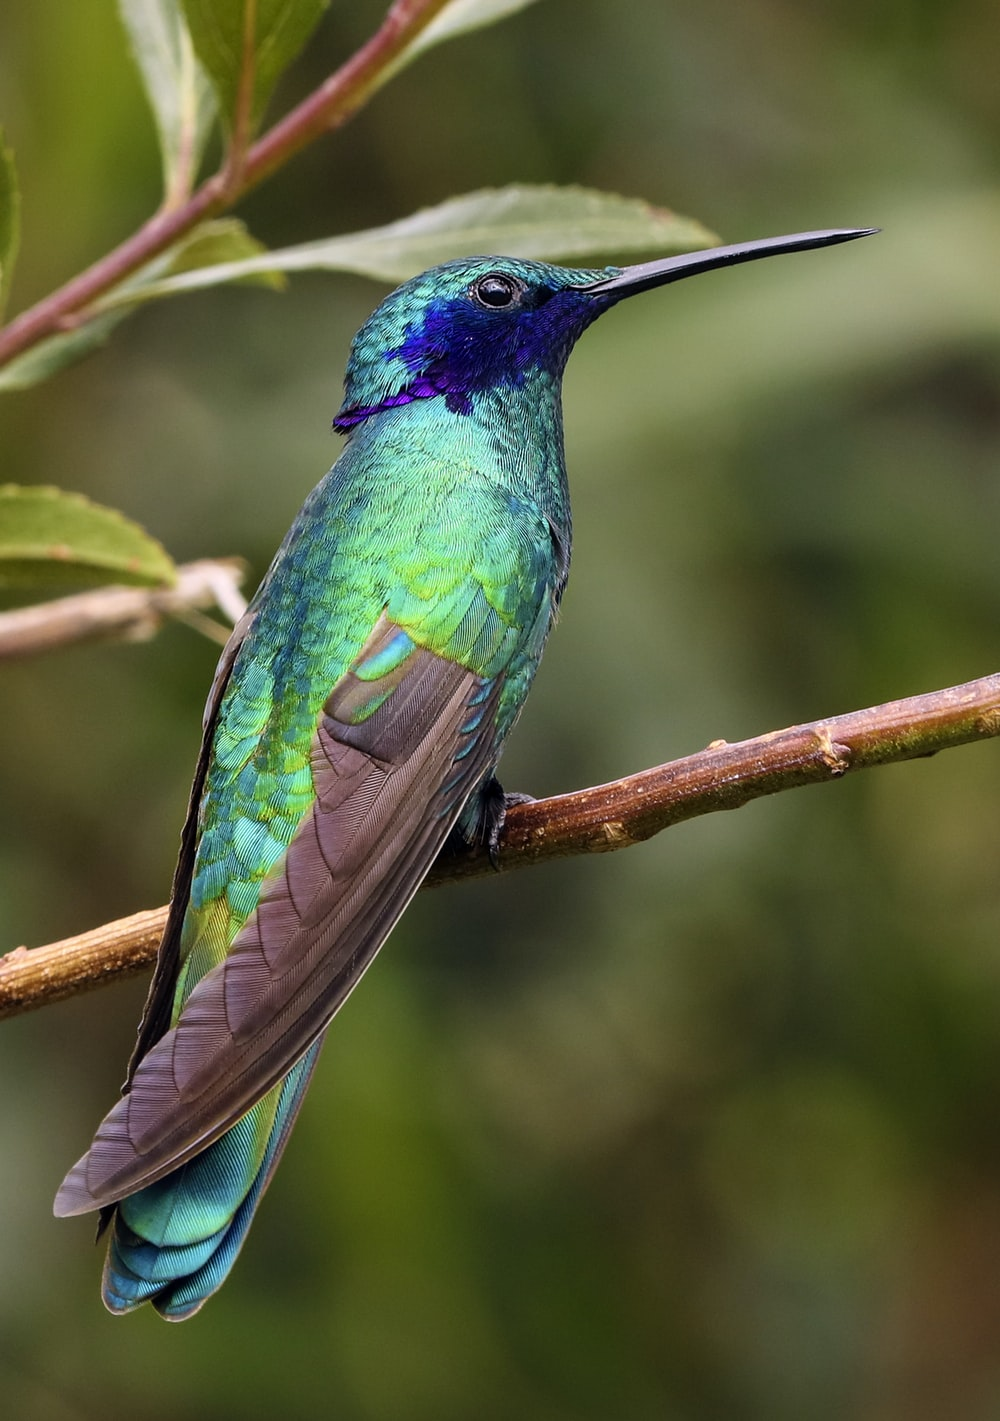 blue and green bird on top of brown branch during daytime